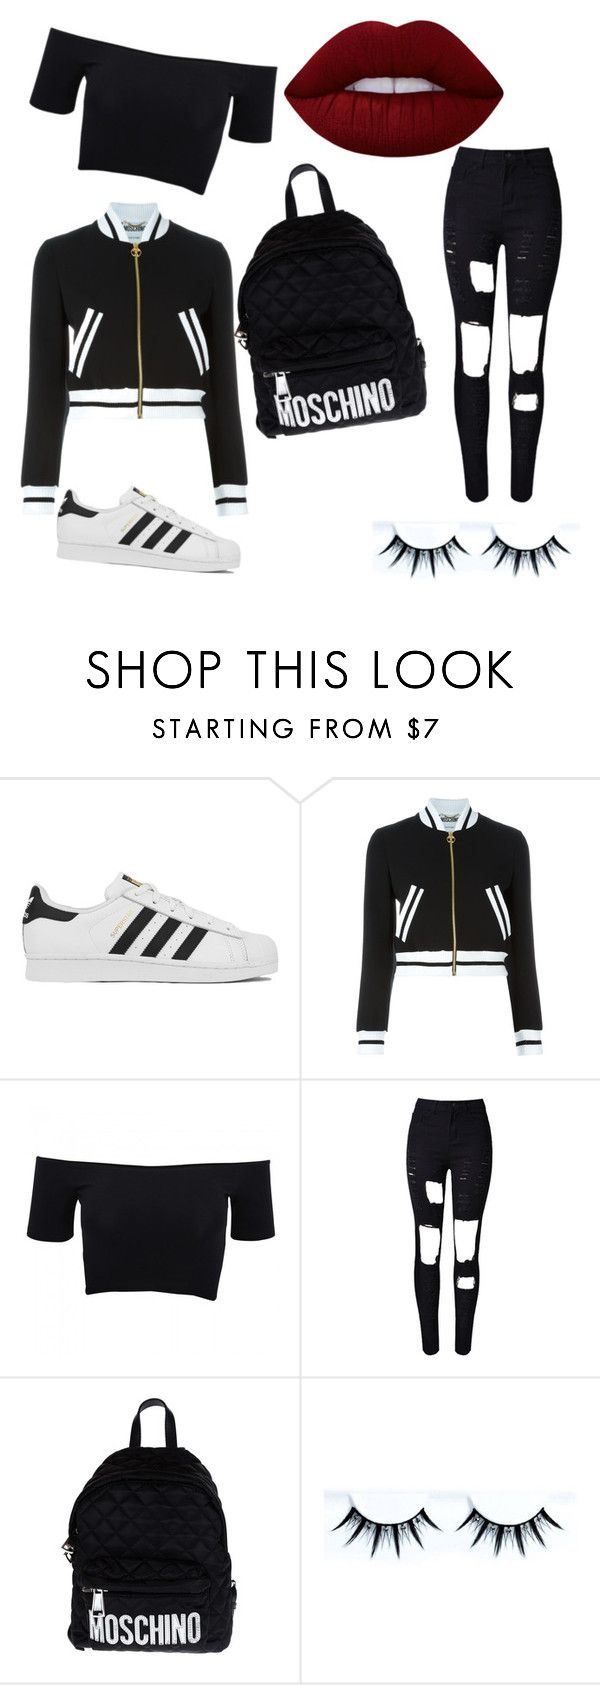 """""""Untitled #1"""" by vanessa-johansson ❤ liked on Polyvore featuring adidas, Moschino, American Apparel and Lime Crime"""